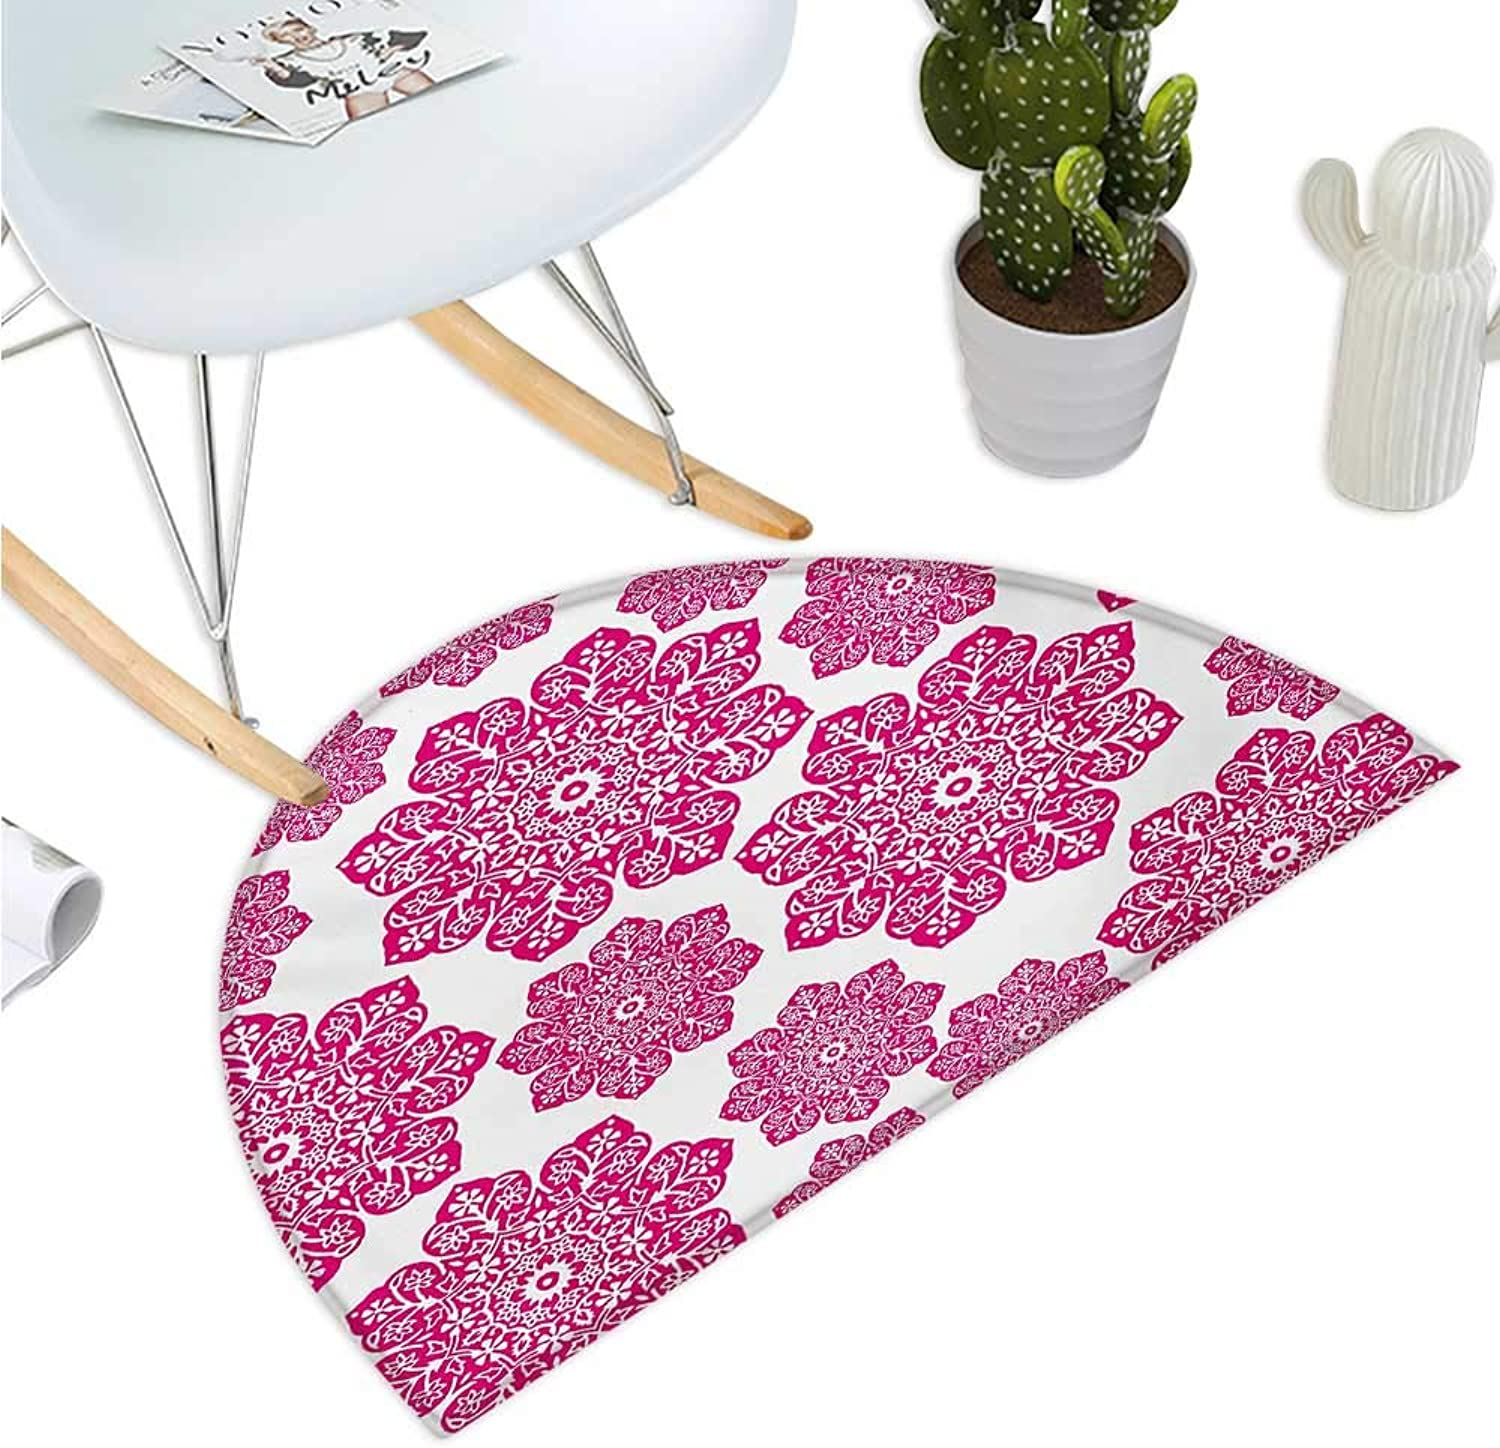 Hot Pink Semicircular Cushion Ethnic Batik Floral Arrangement with Eastern Artistic Design Mandala Pattern Bathroom Mat H 39.3  xD 59  Hot Pink White